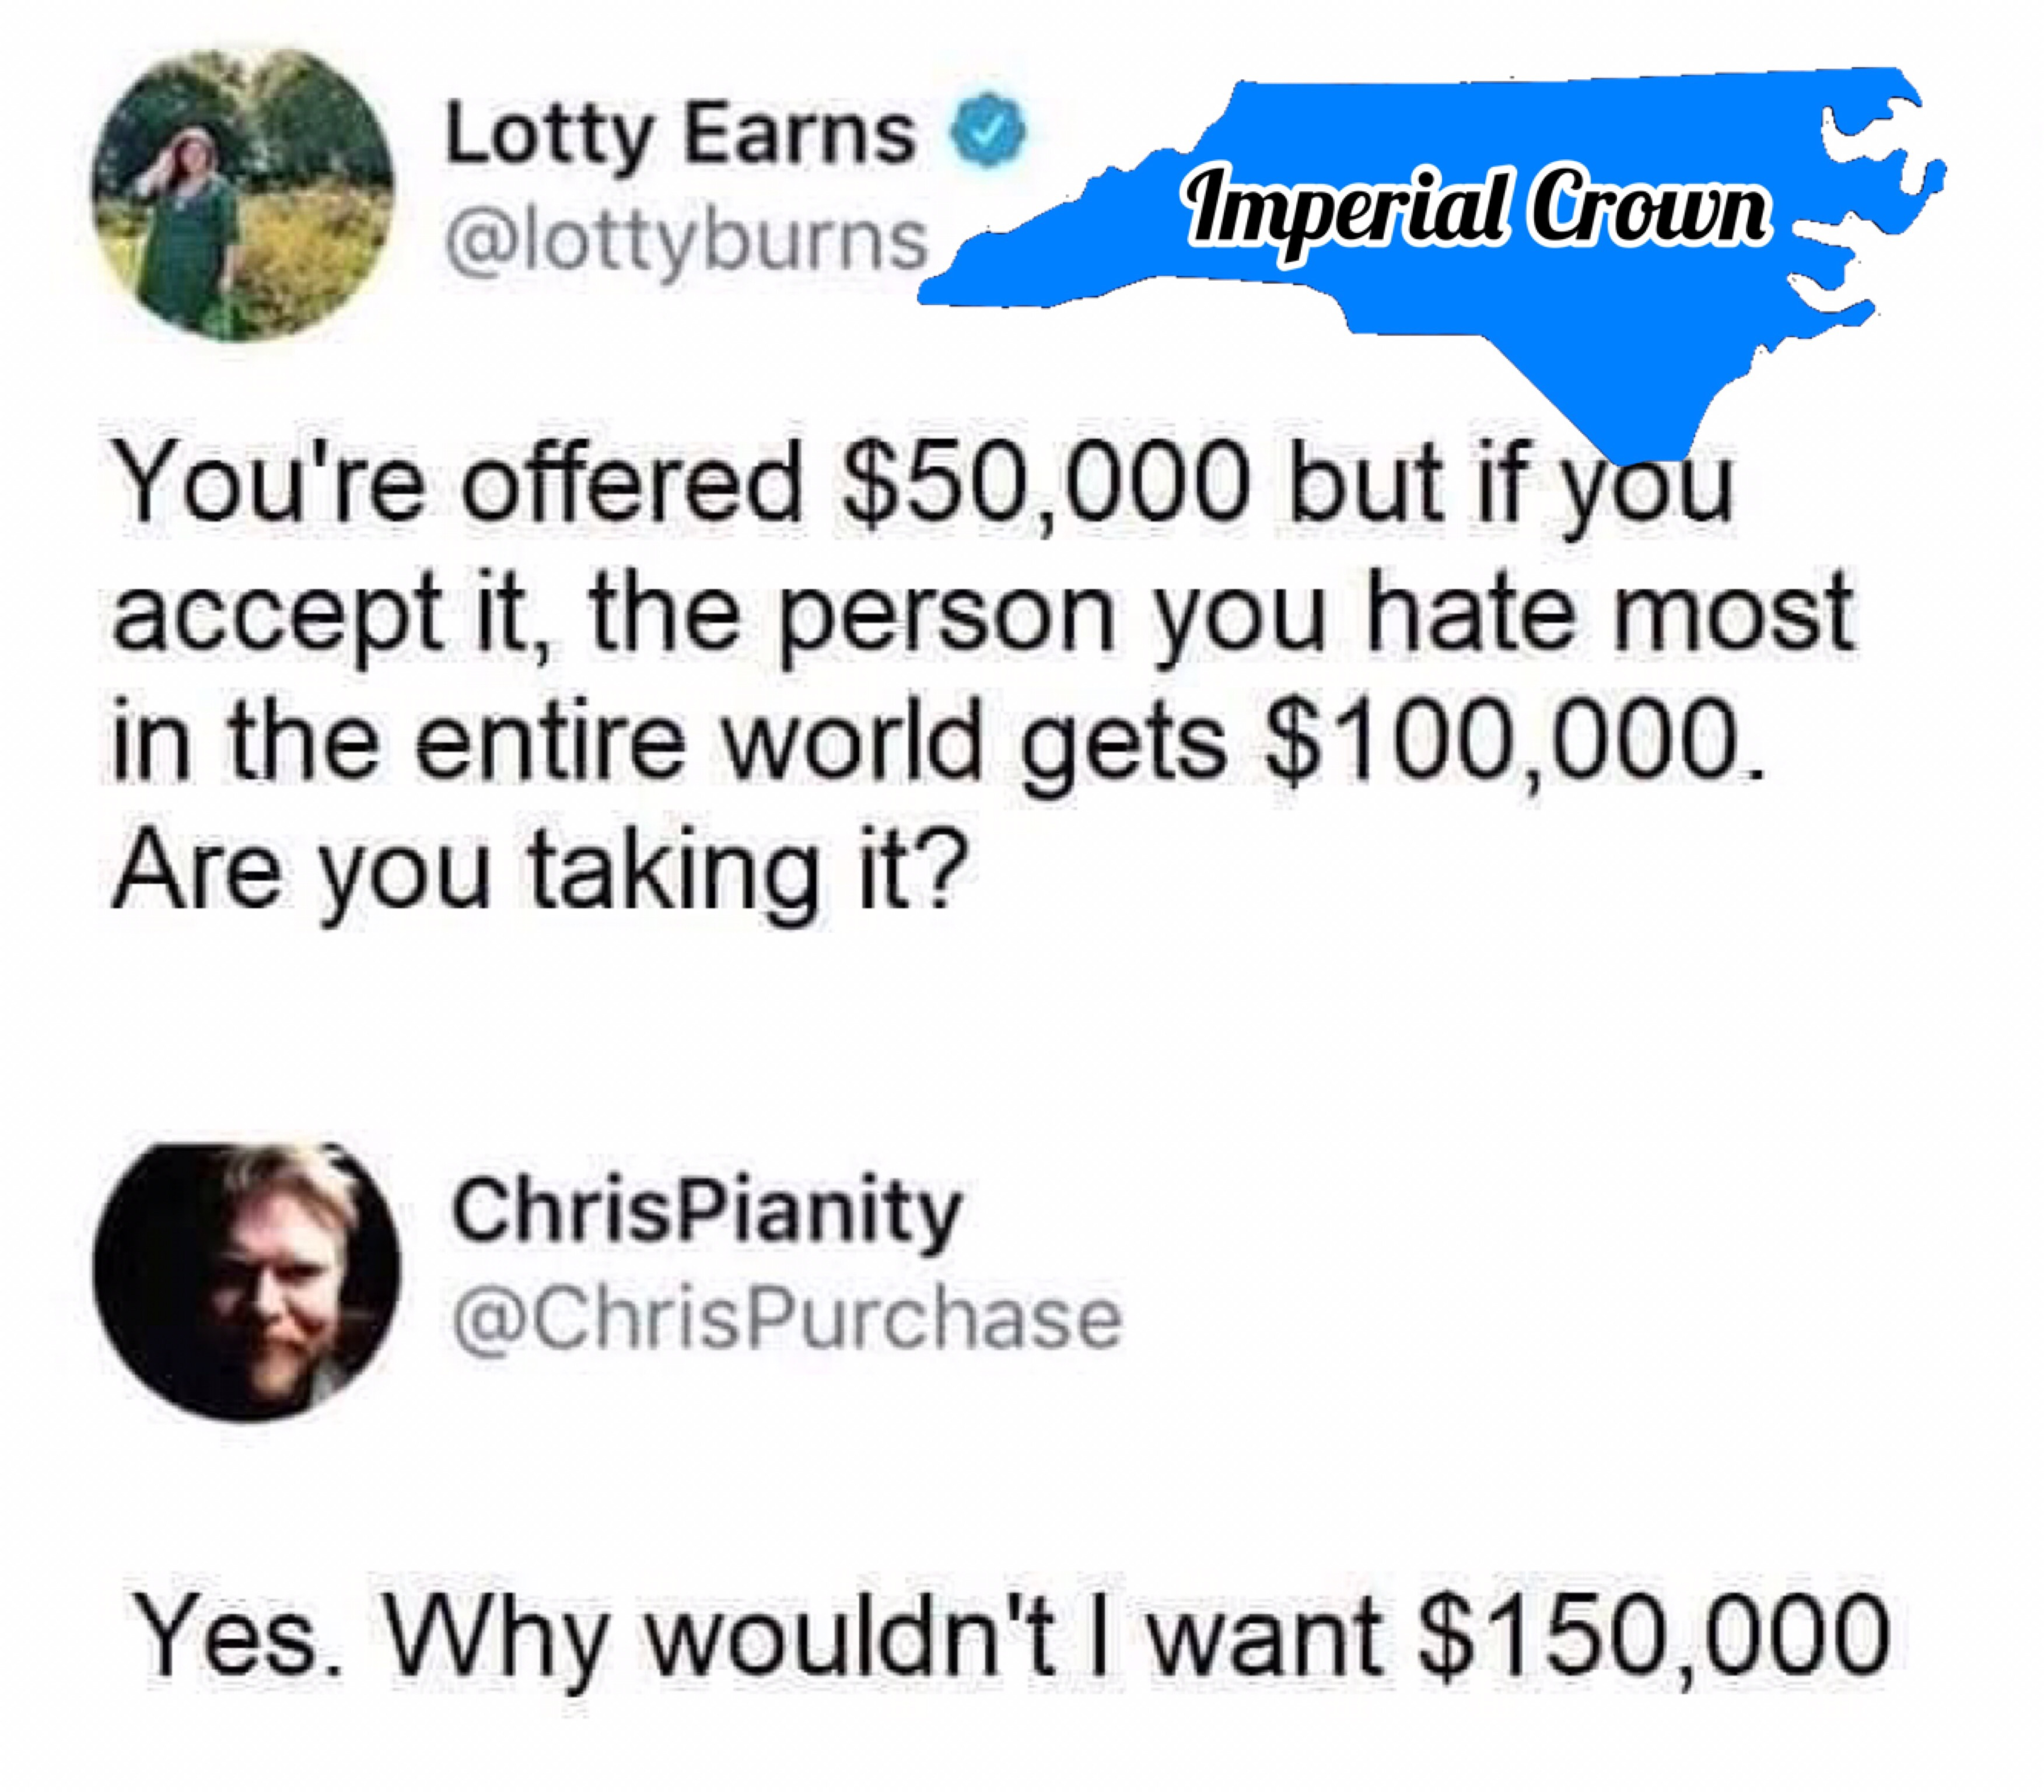 You're offered $50,000 but if you accept it….